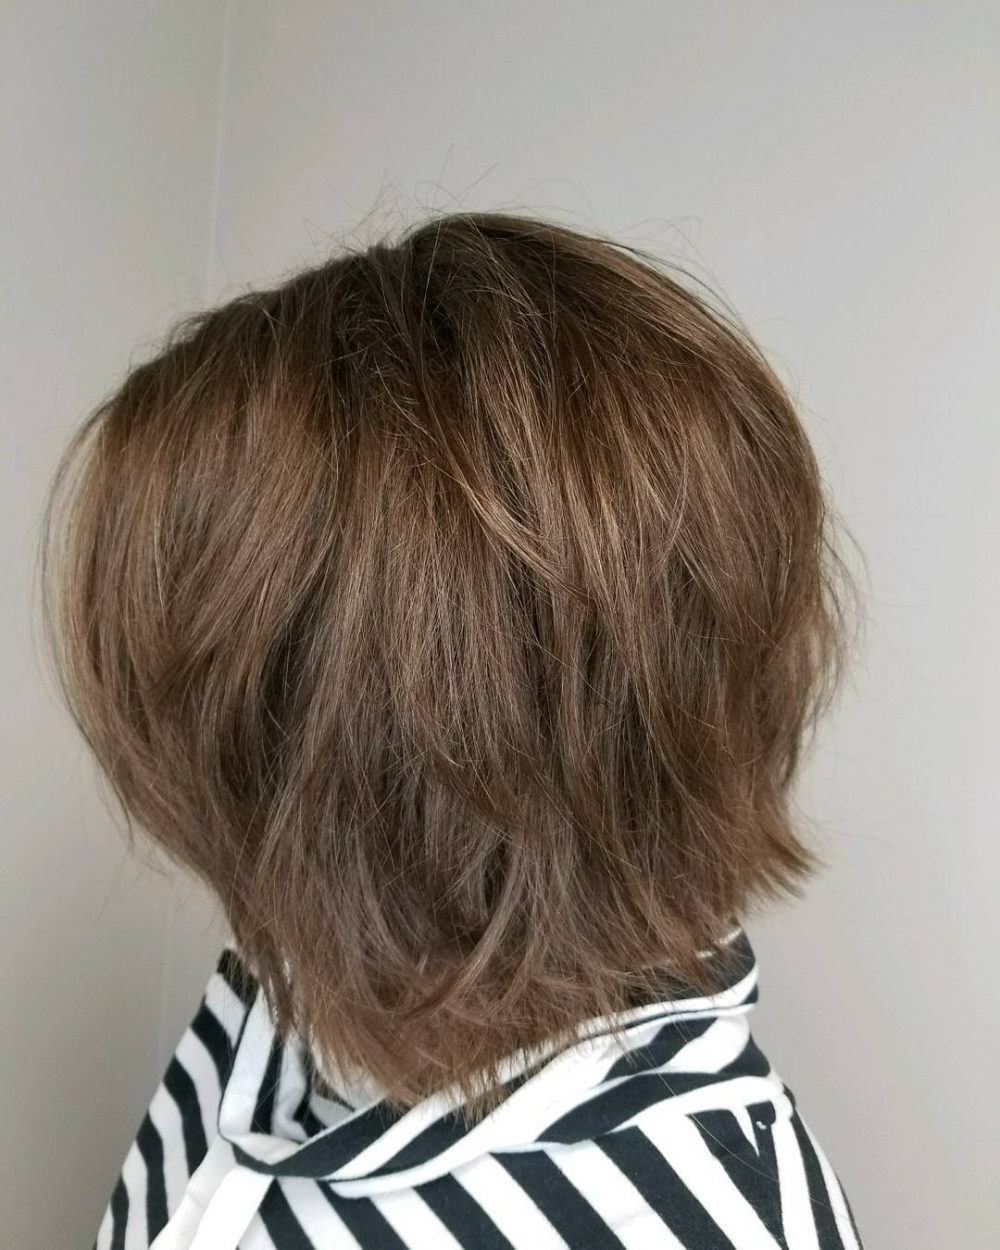 34 Best Choppy Layered Hairstyles (that Will Flatter Anyone) Inside Shoulder Length Choppy Hairstyles (Gallery 6 of 20)